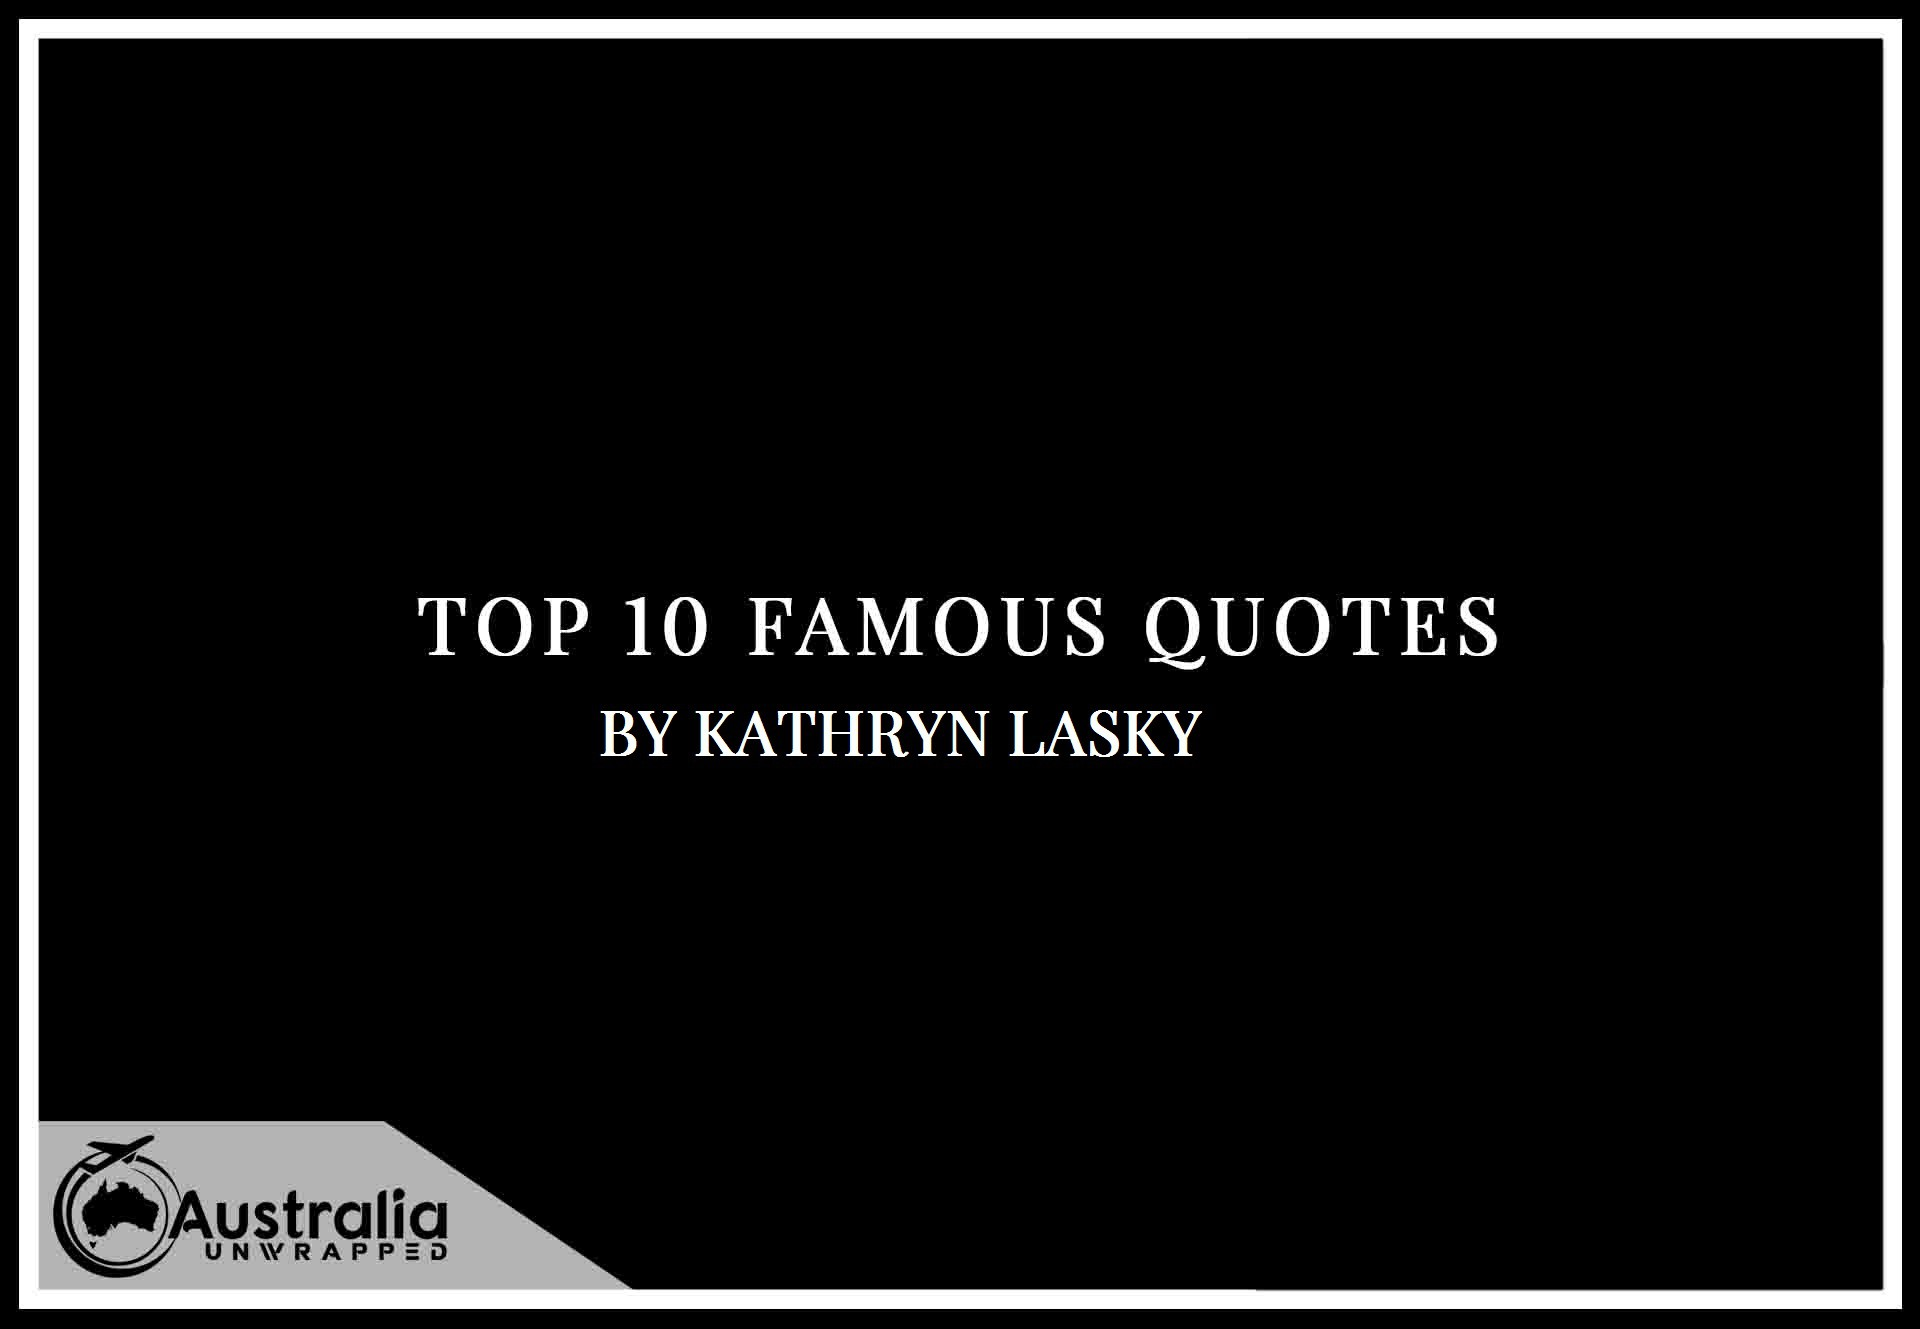 Kathryn Lasky's Top 10 Popular and Famous Quotes